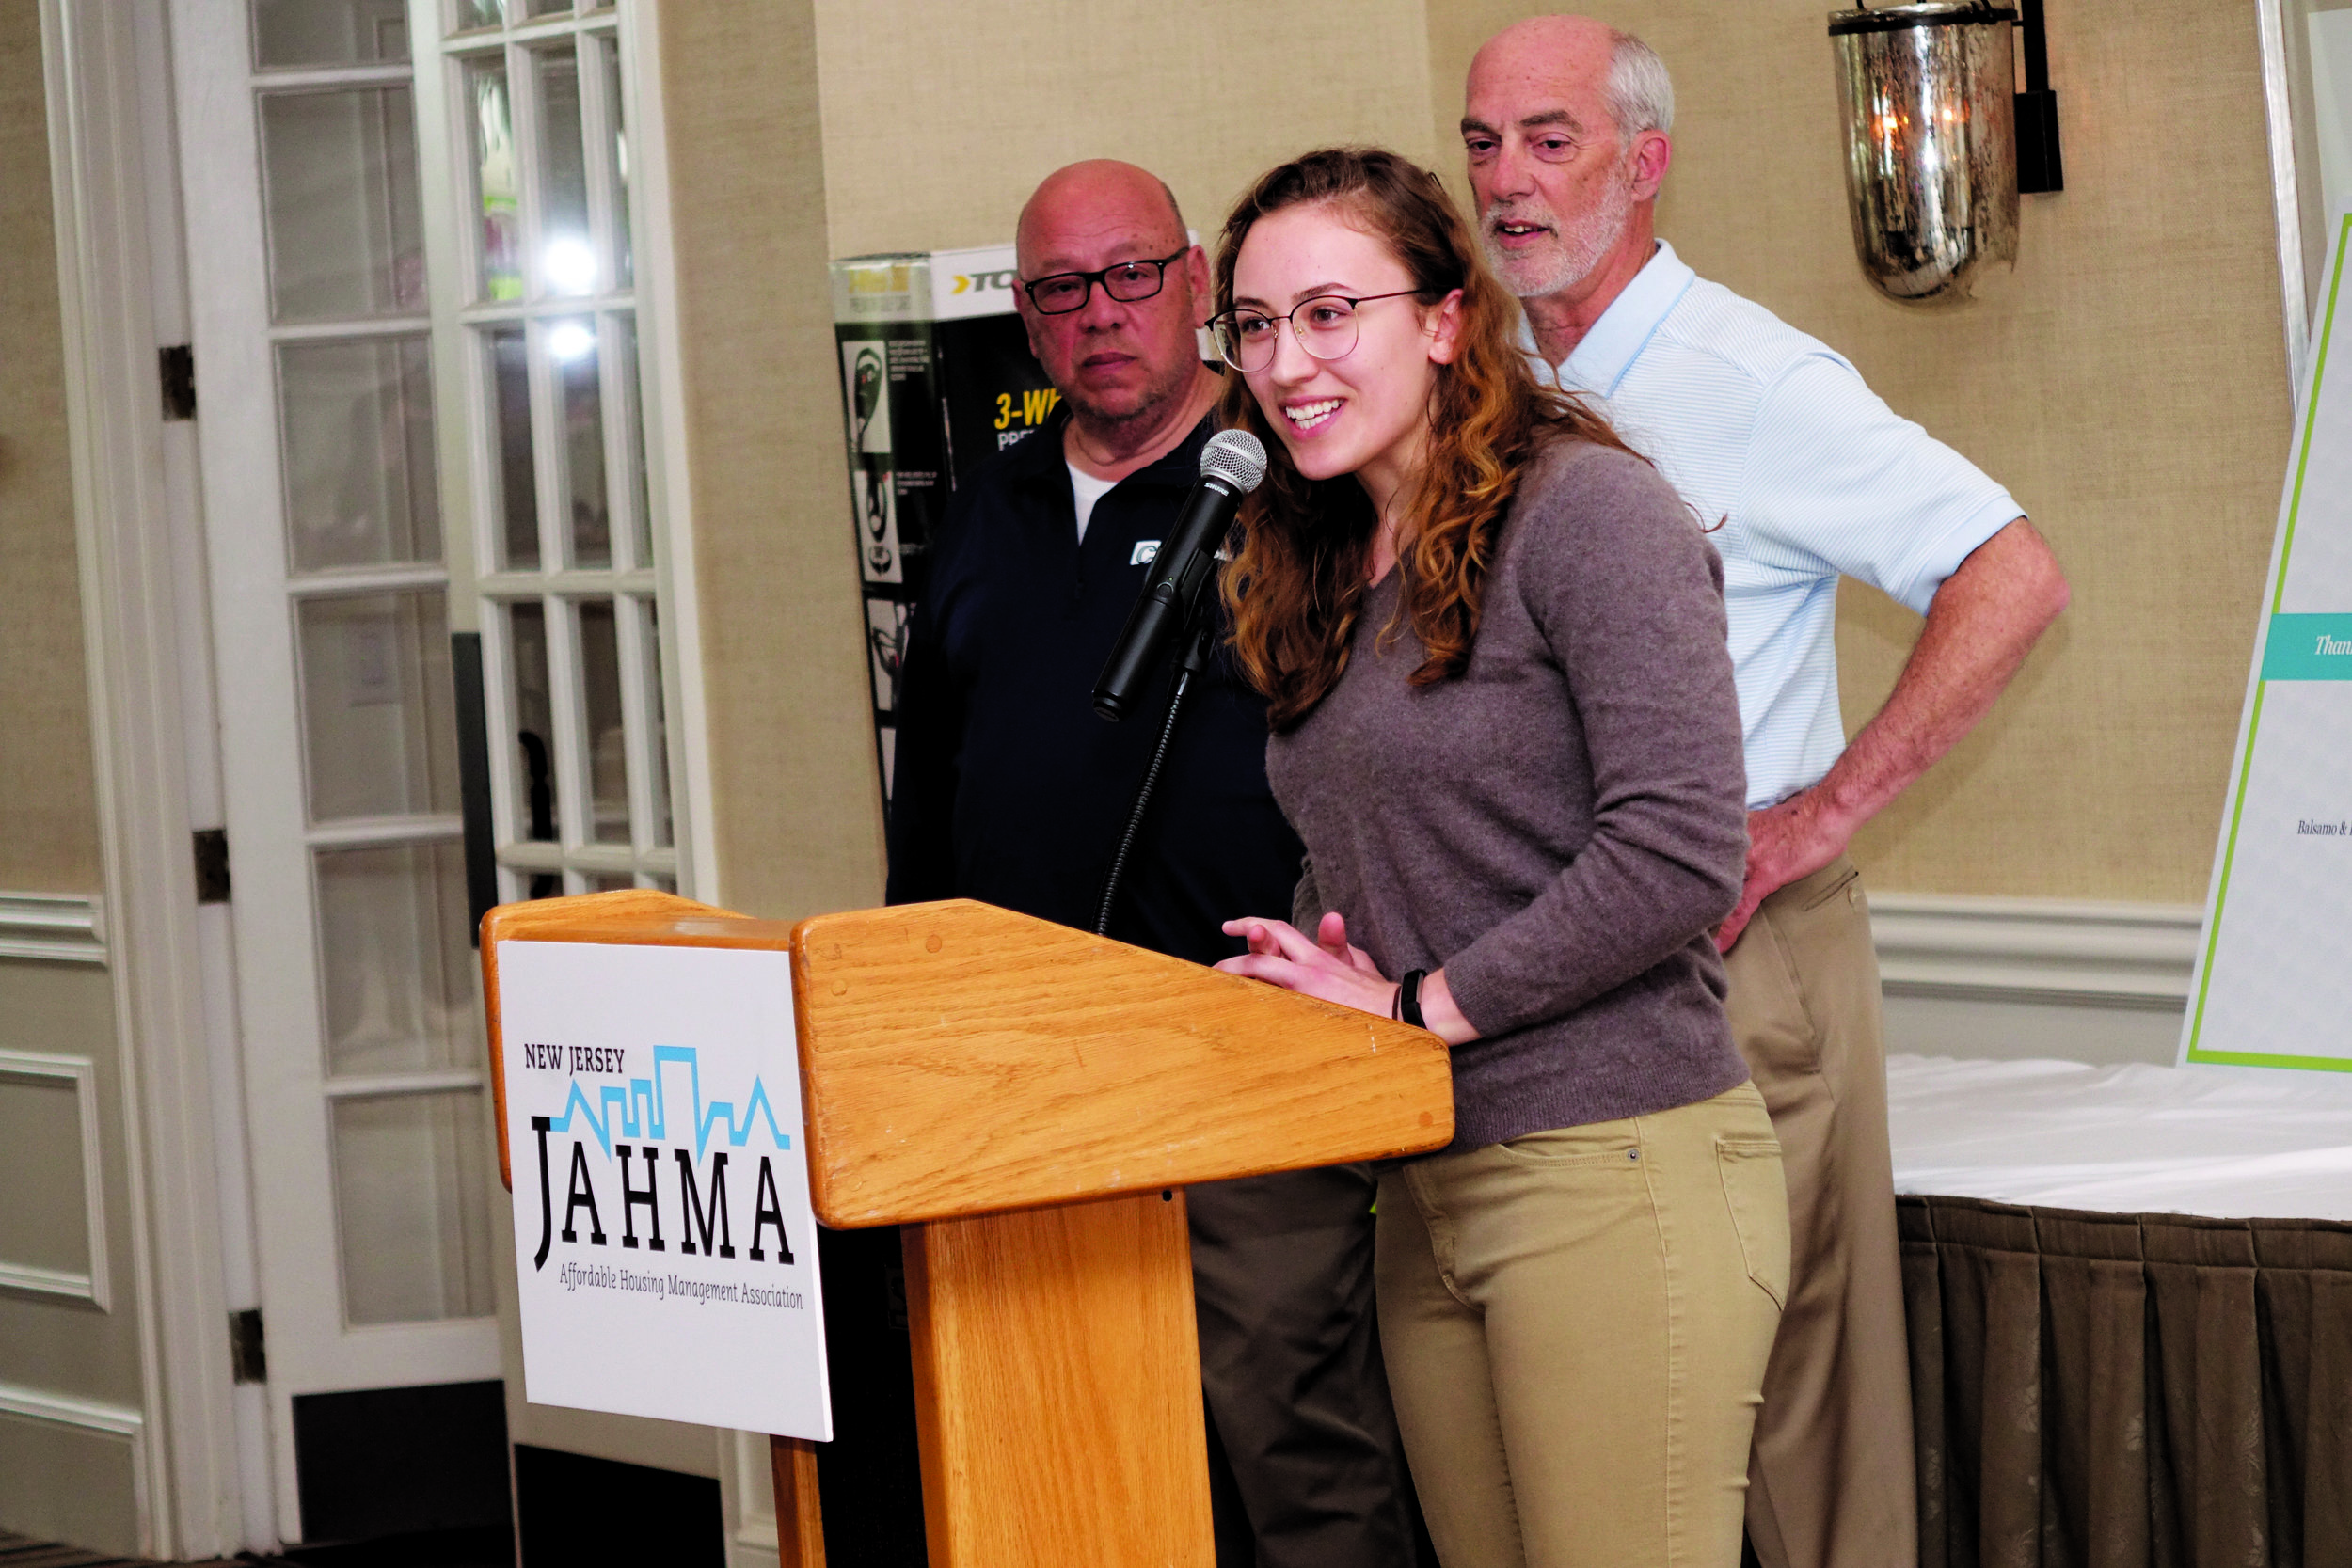 2018 JAHMA Scholar and recent Rutgers University graduate Alana Chmiel speaks to the JAHMA Foundation Golf Outing attendees on May 1 with Ken Pagano and Dr. Bruce Johnson of the foundation in the background.  PHOTO CREDIT: LARRY FALKOW/THE APTS